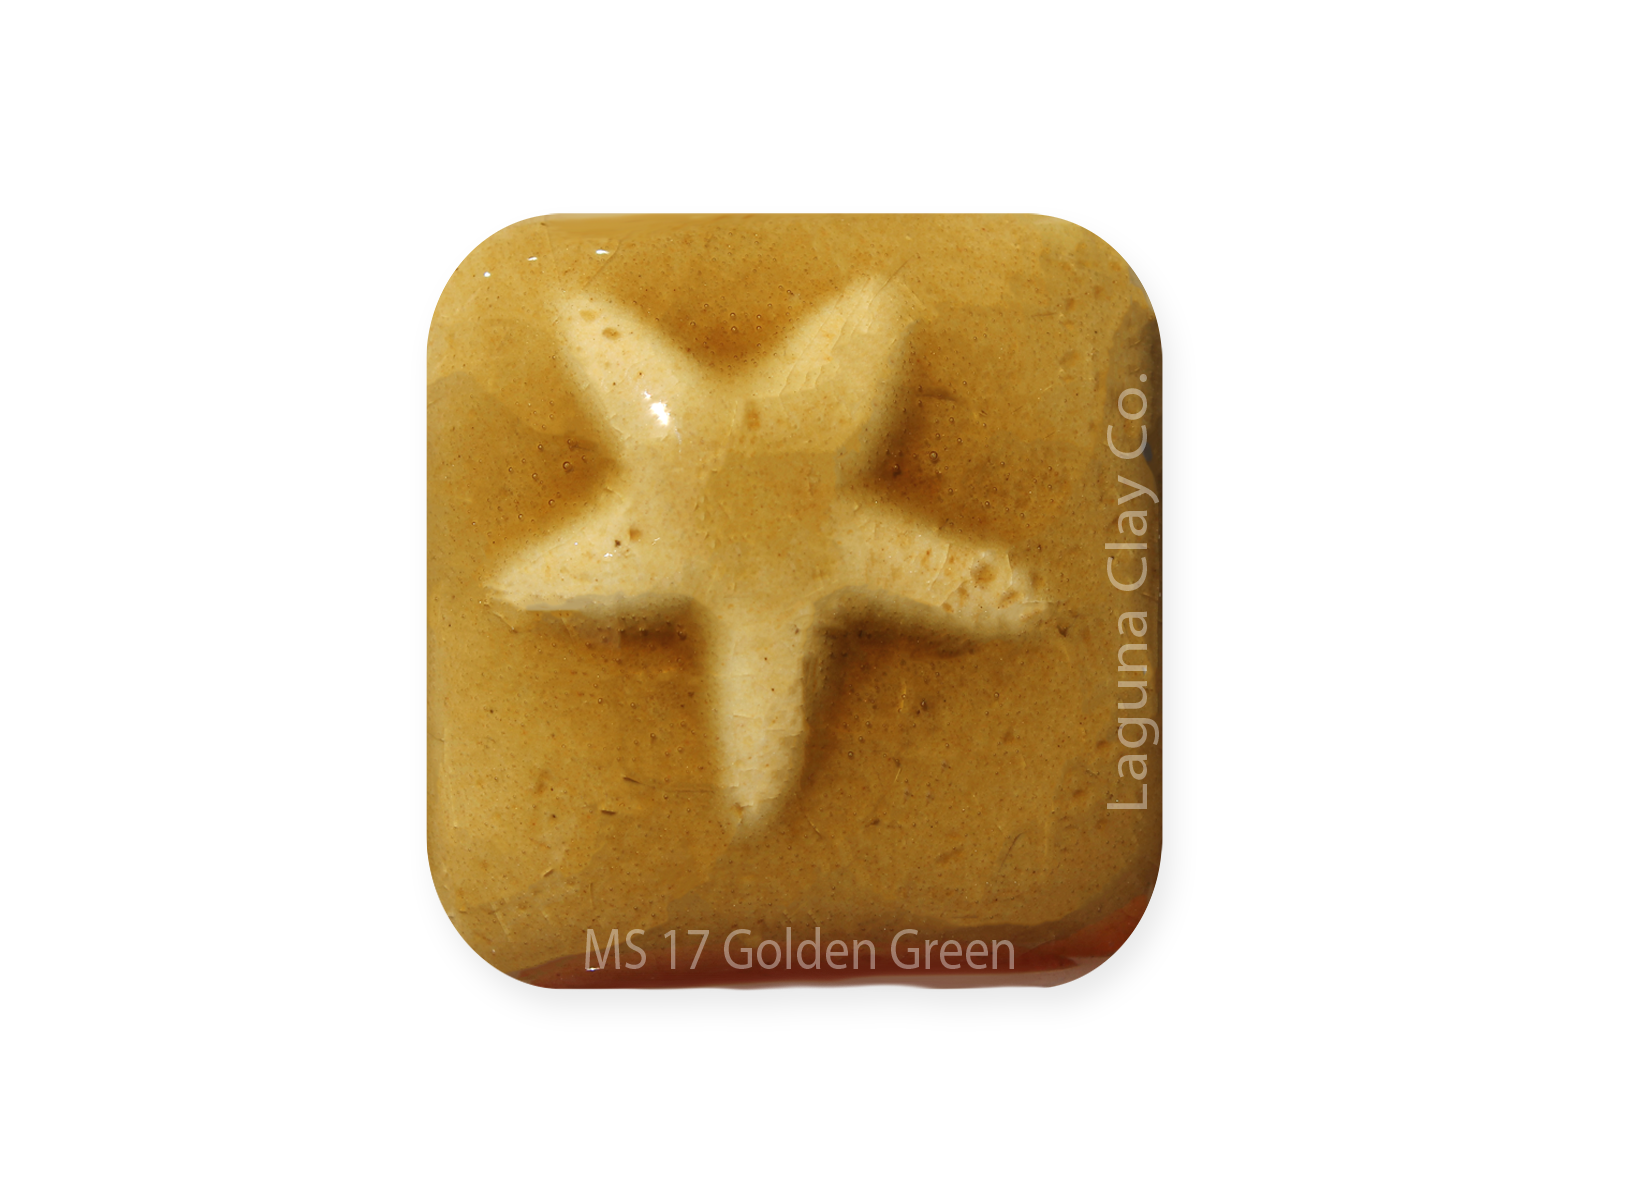 MS-17 Golden Green